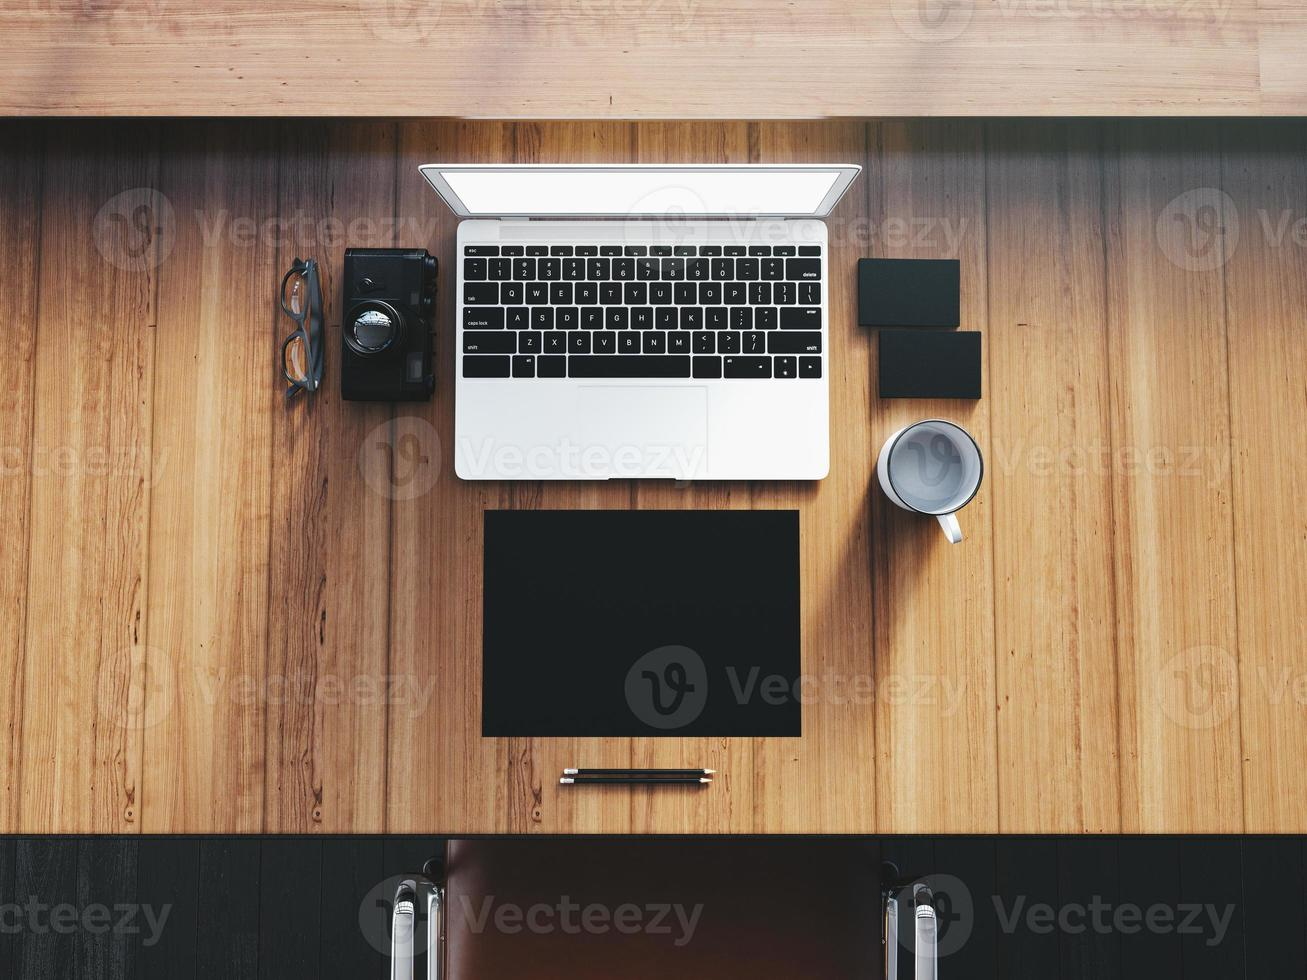 Generic design laptop on the workspace with business objects.  Top photo